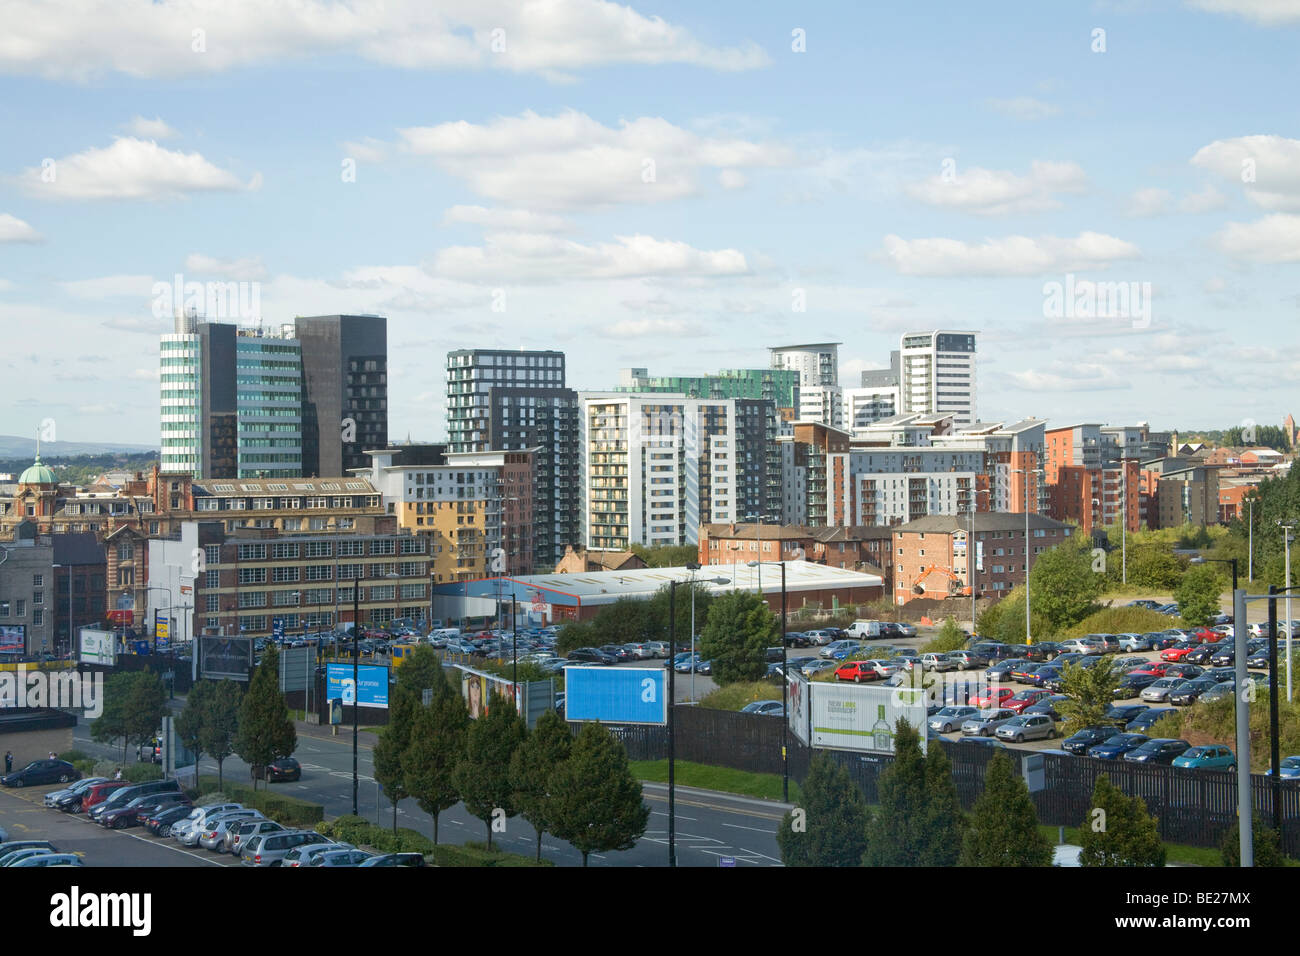 Manchester England UK View across the city skyline of high rise office and apartment buildings - Stock Image